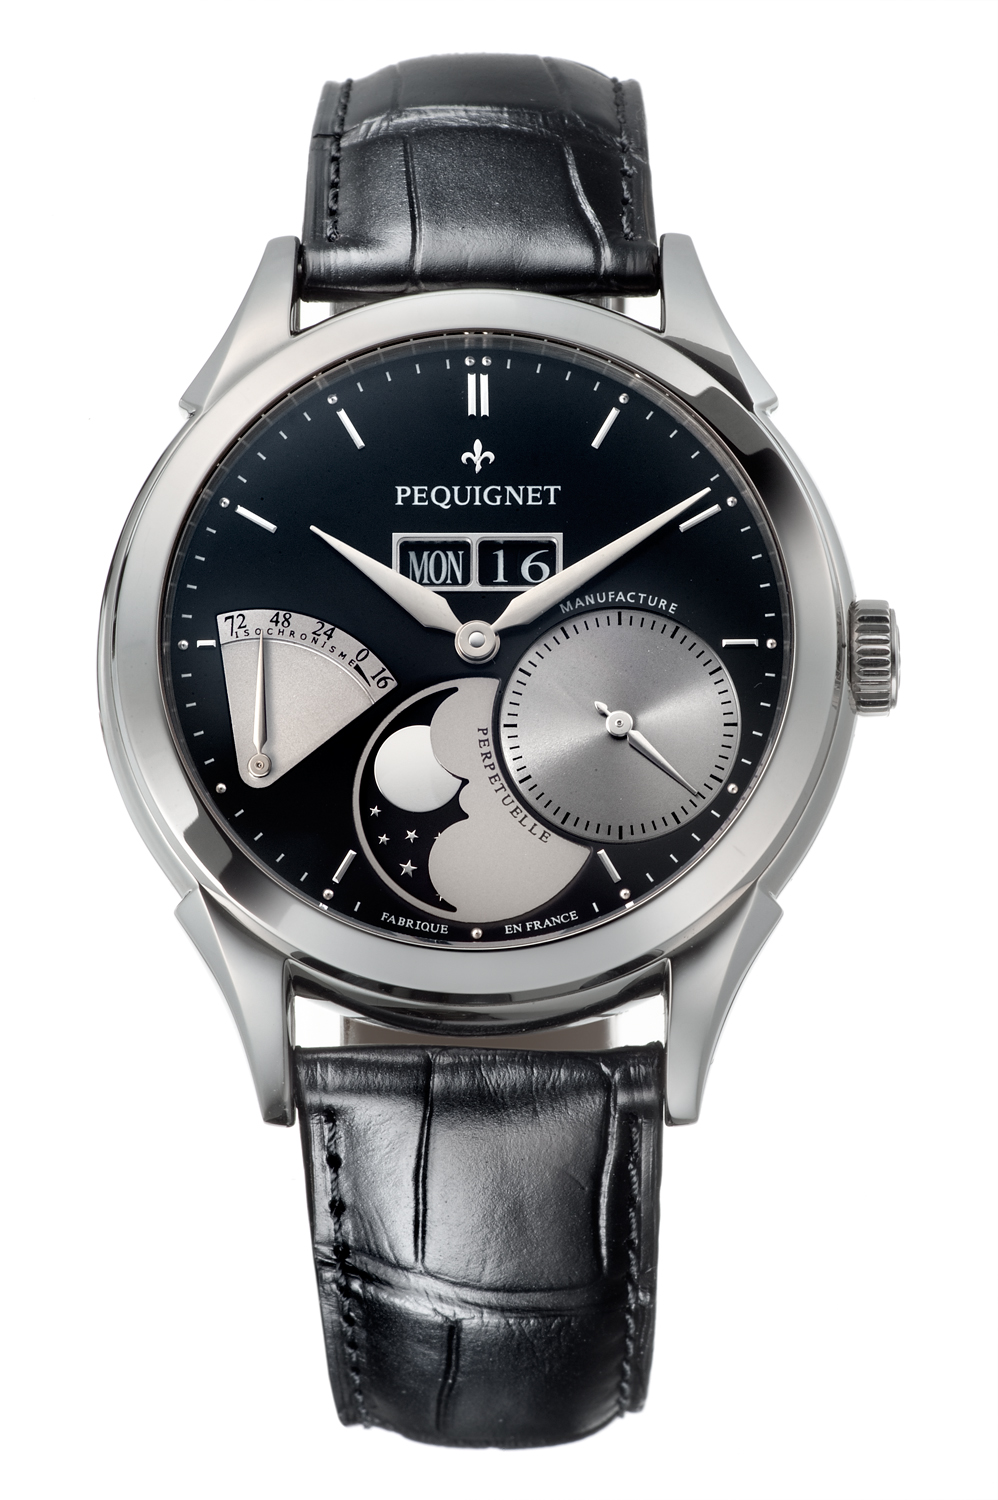 Rue Royale Limited Edition